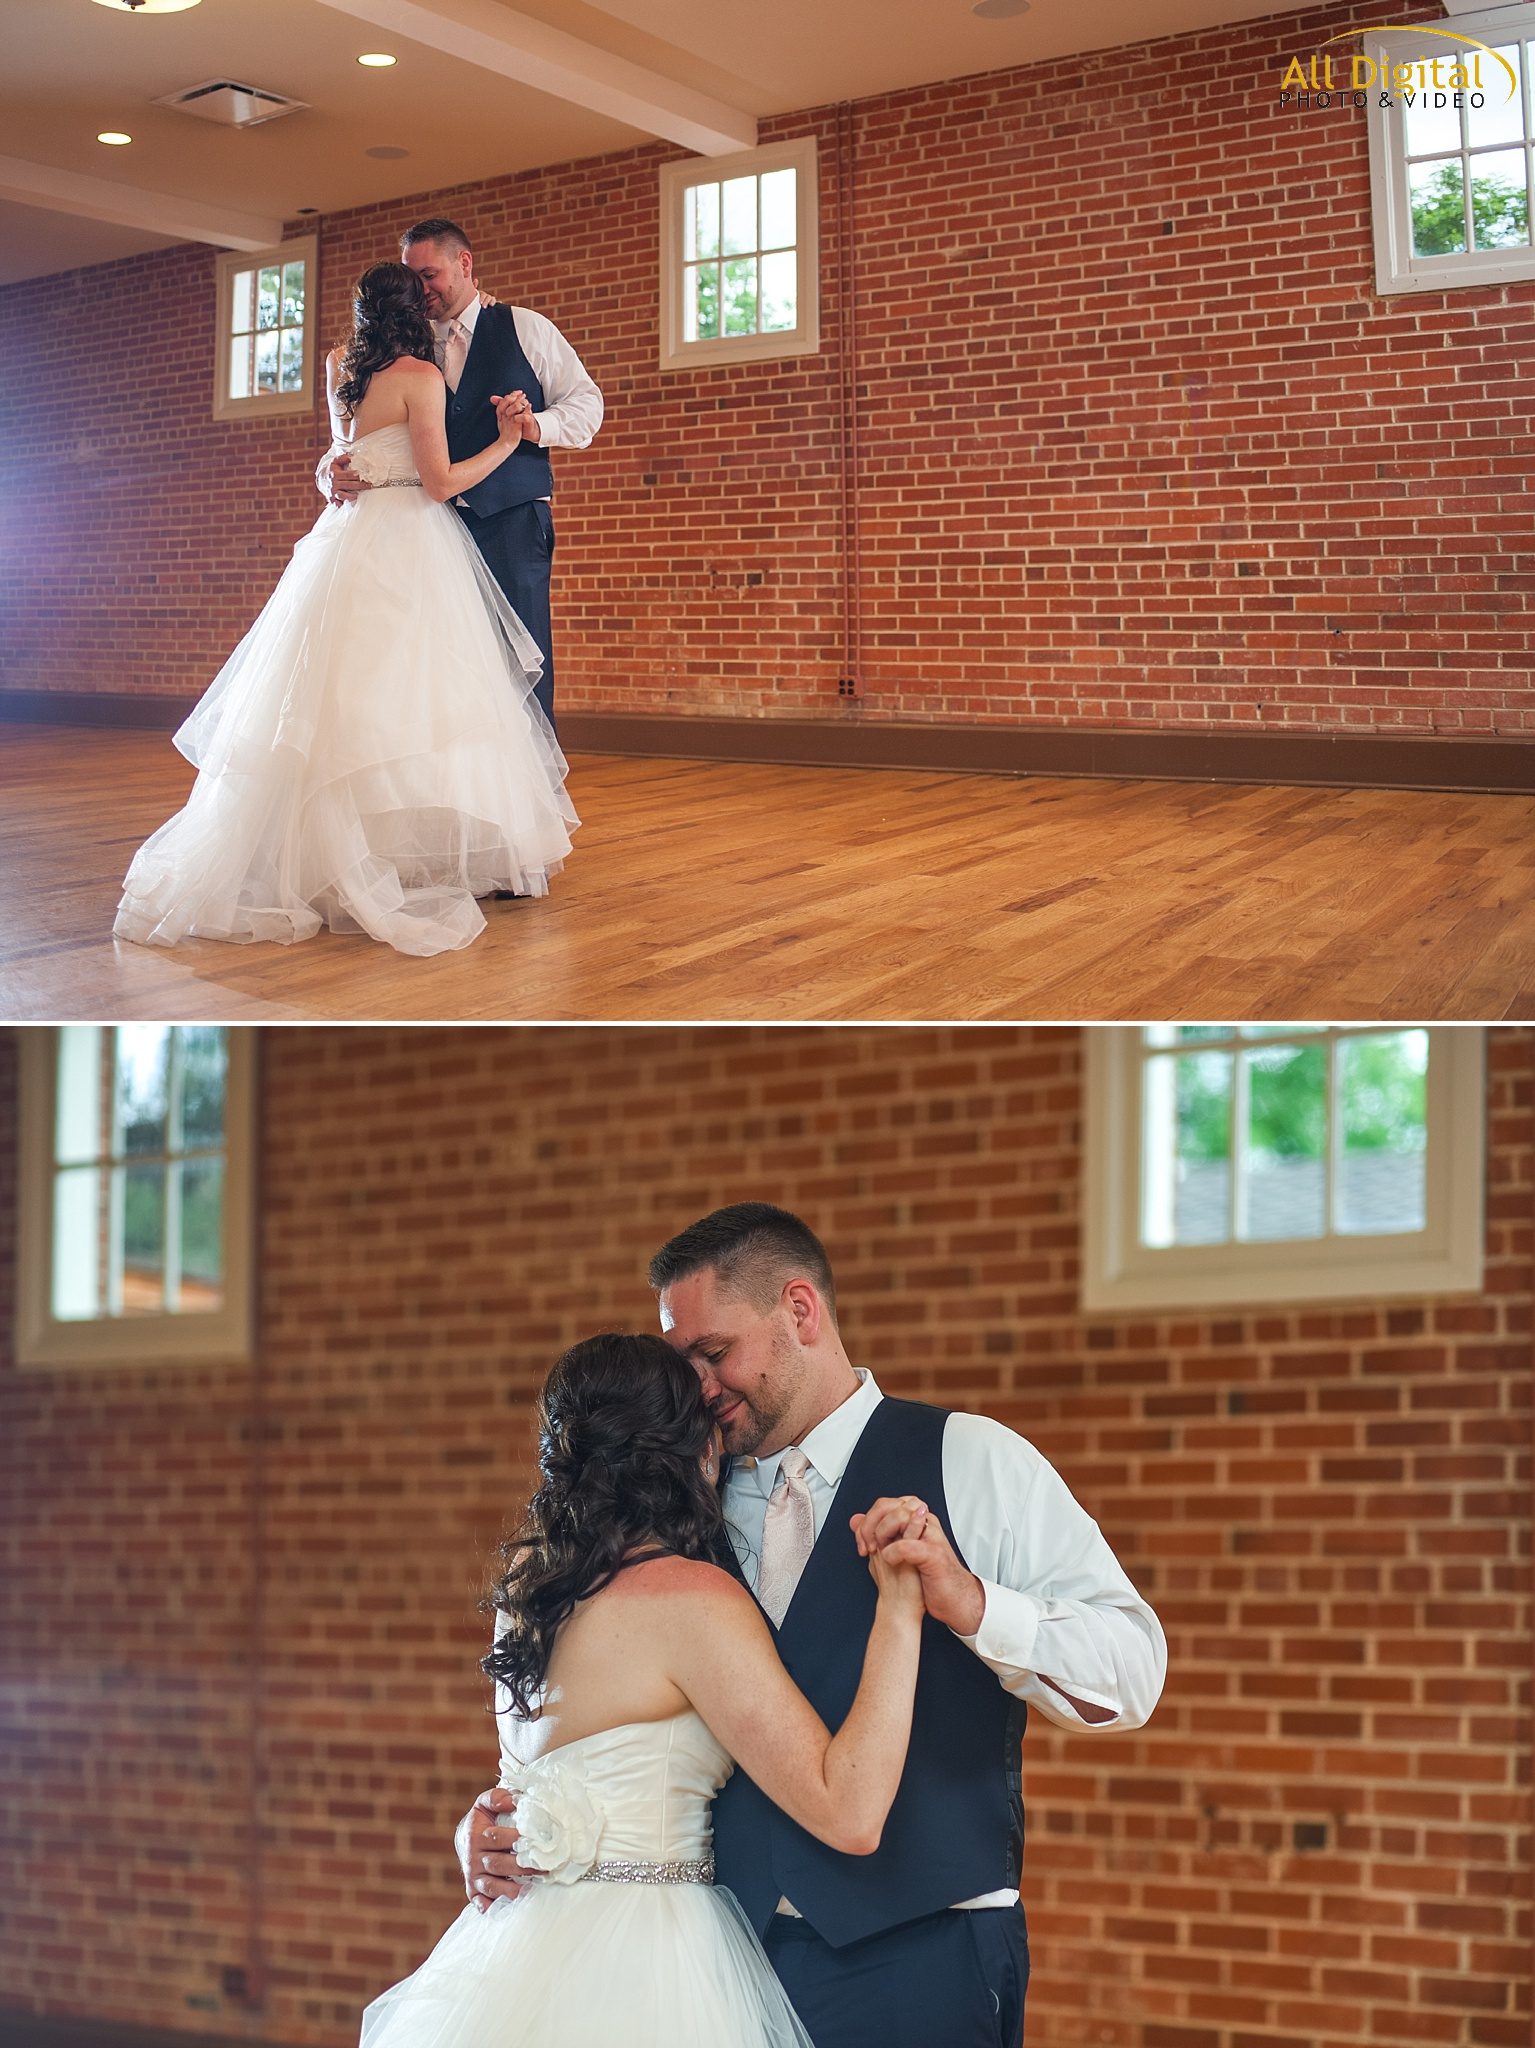 Bride & Groom's First Dance at Highlands Ranch Mansion